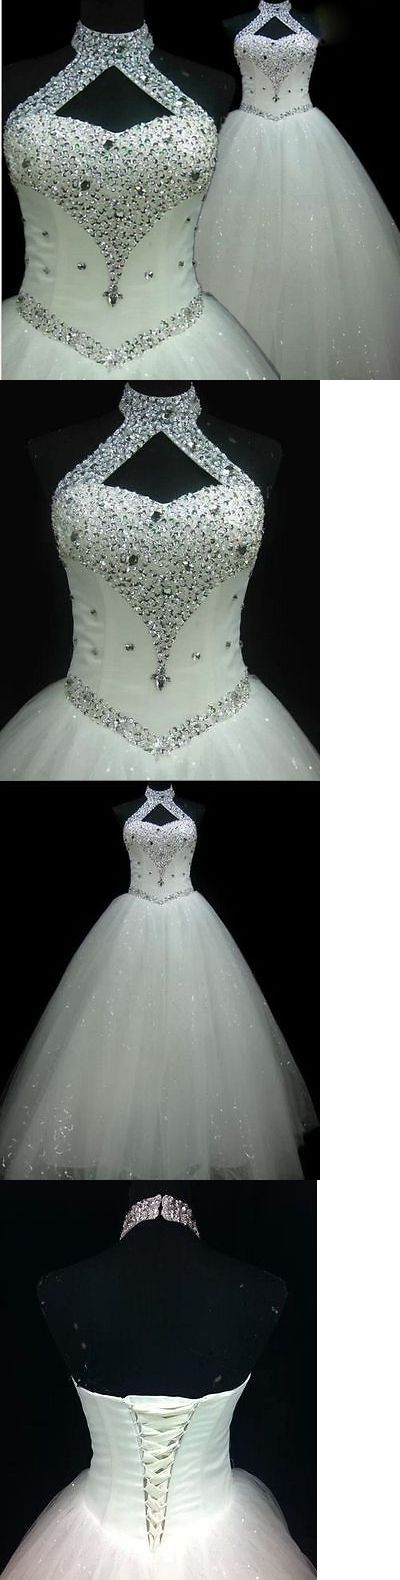 Wedding Dresses: New Backless White Ivory Wedding Dress Bridal Gown Custom Size 6/8/10/12/14/16 BUY IT NOW ONLY: $72.99